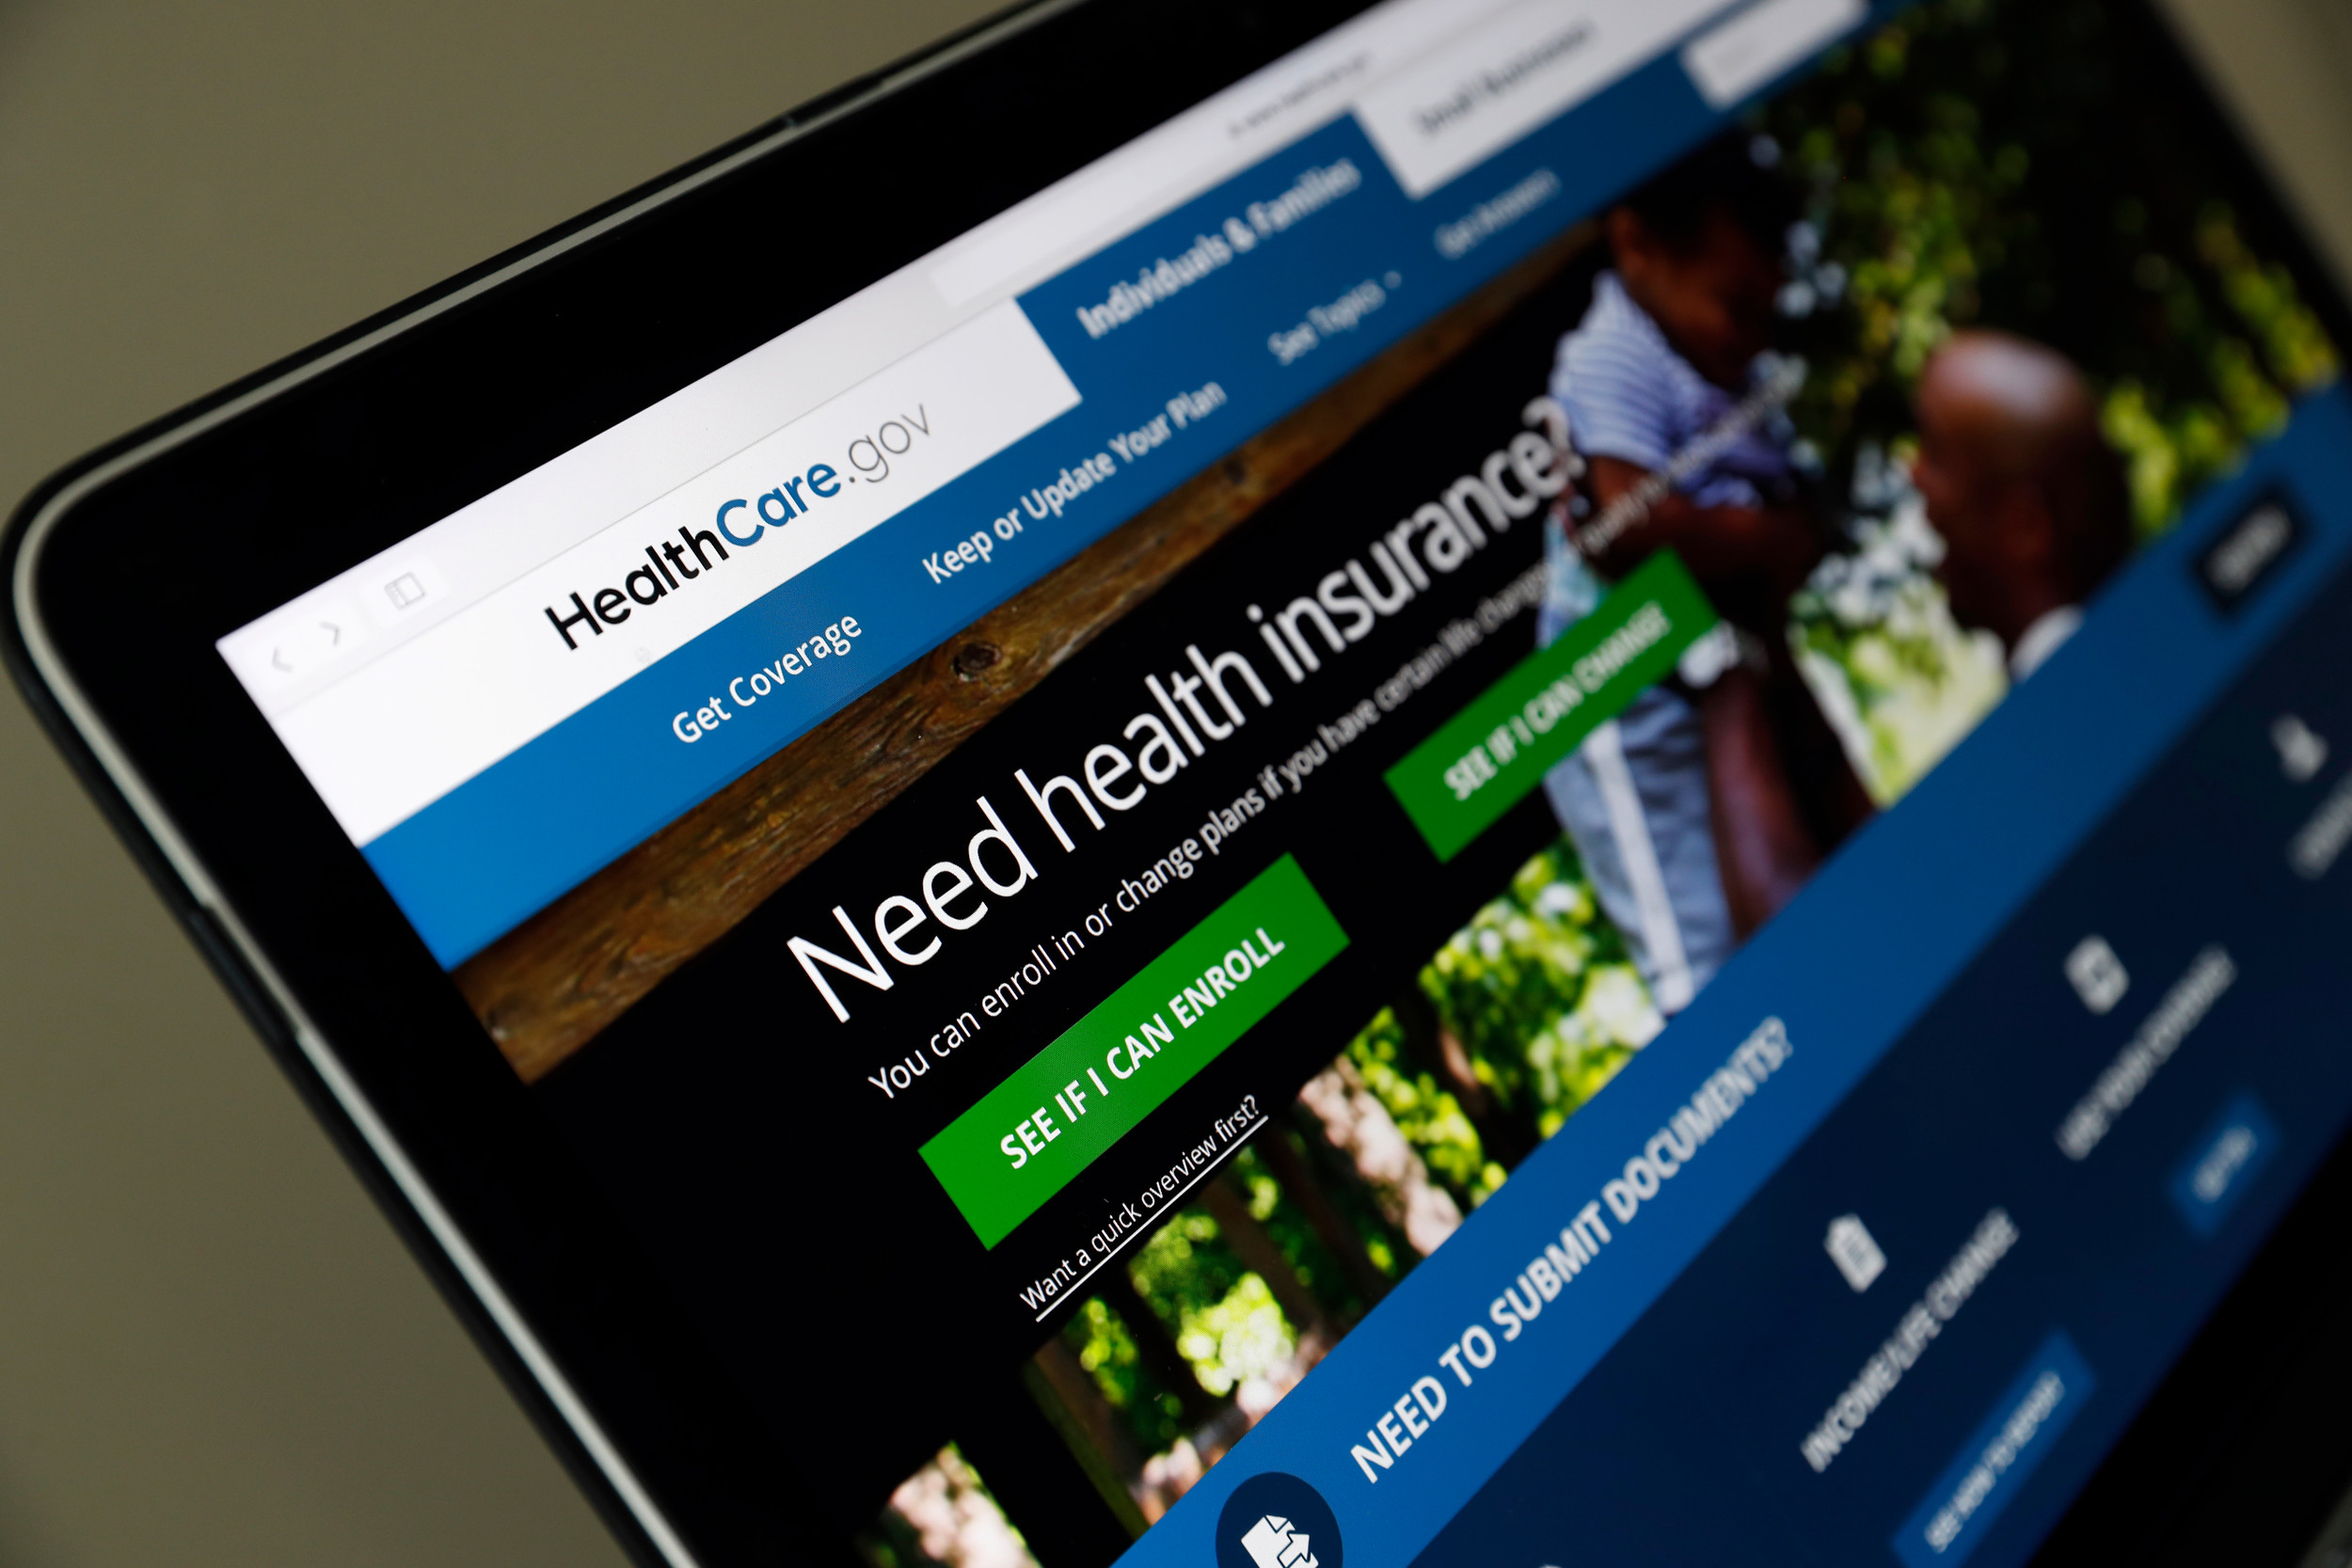 Local organizations help people sign up for health insurance coverage